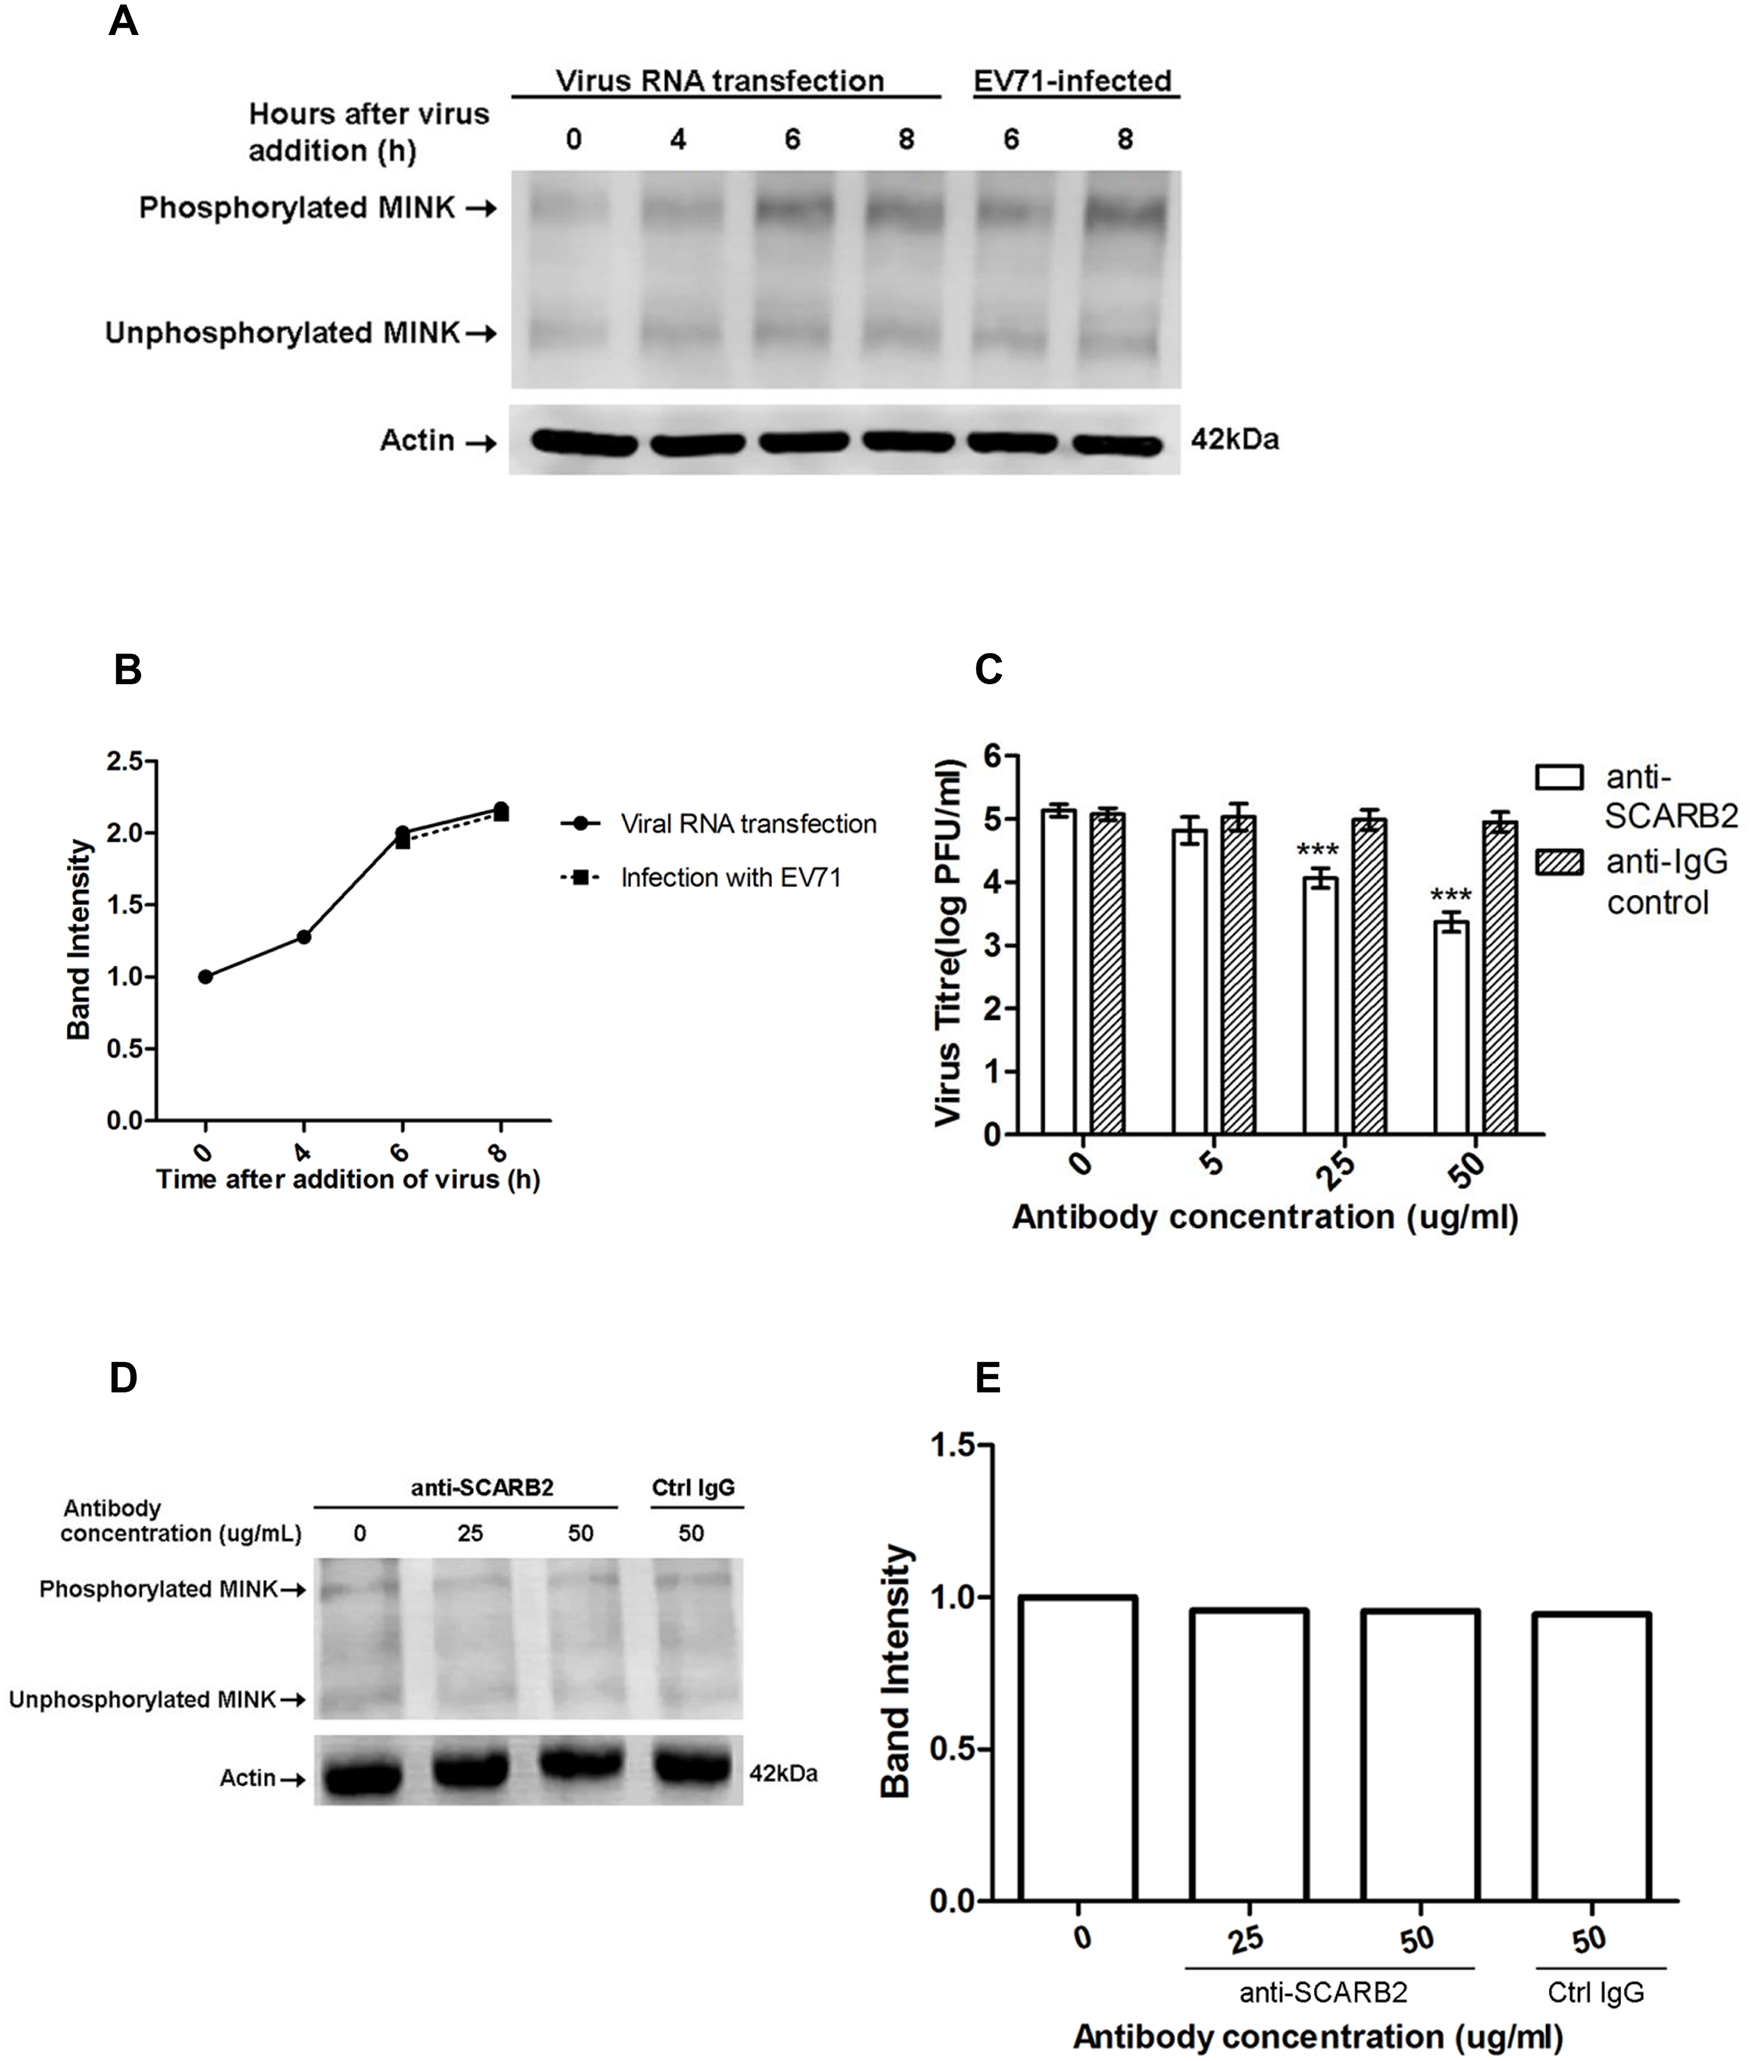 Phosphorylation of MINK is triggered post-entry by early replication events.